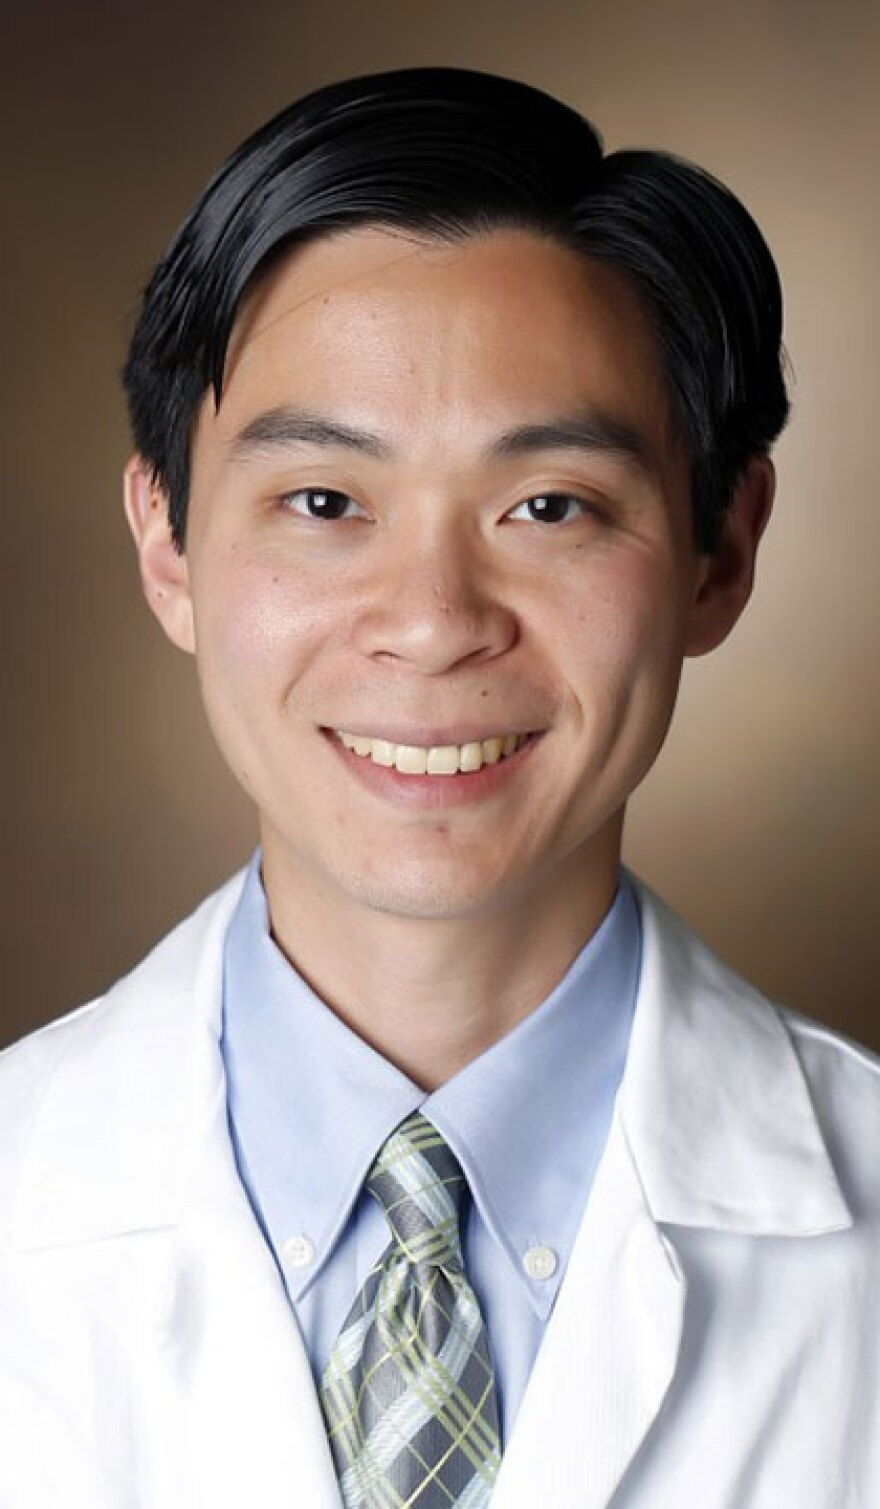 Dr. Kimbell Kornu works on the ethics committee at SSM Health St. Louis University Hospital.